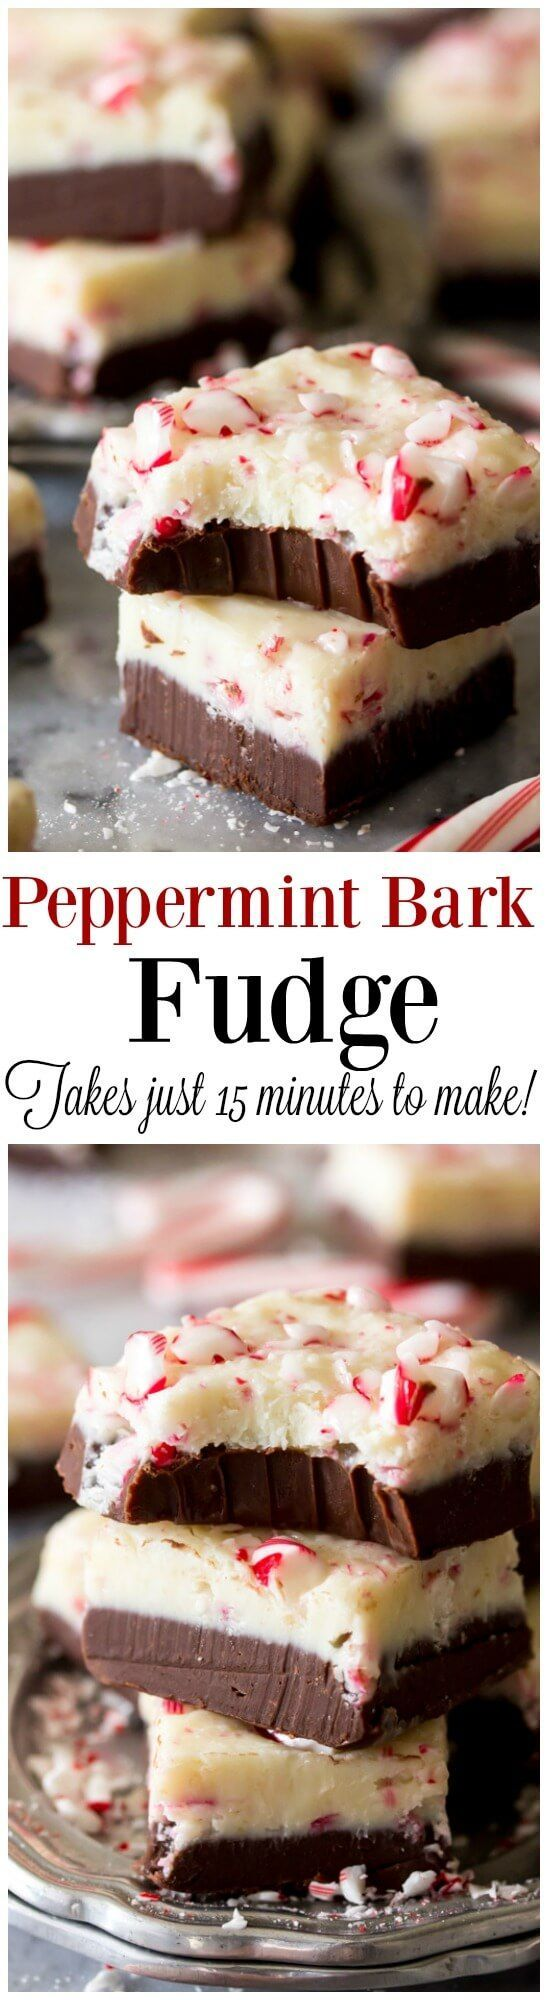 peppermint-bark-fudge-made-in-just-15-minutes-without-a-candy-thermometer-sugar-sp